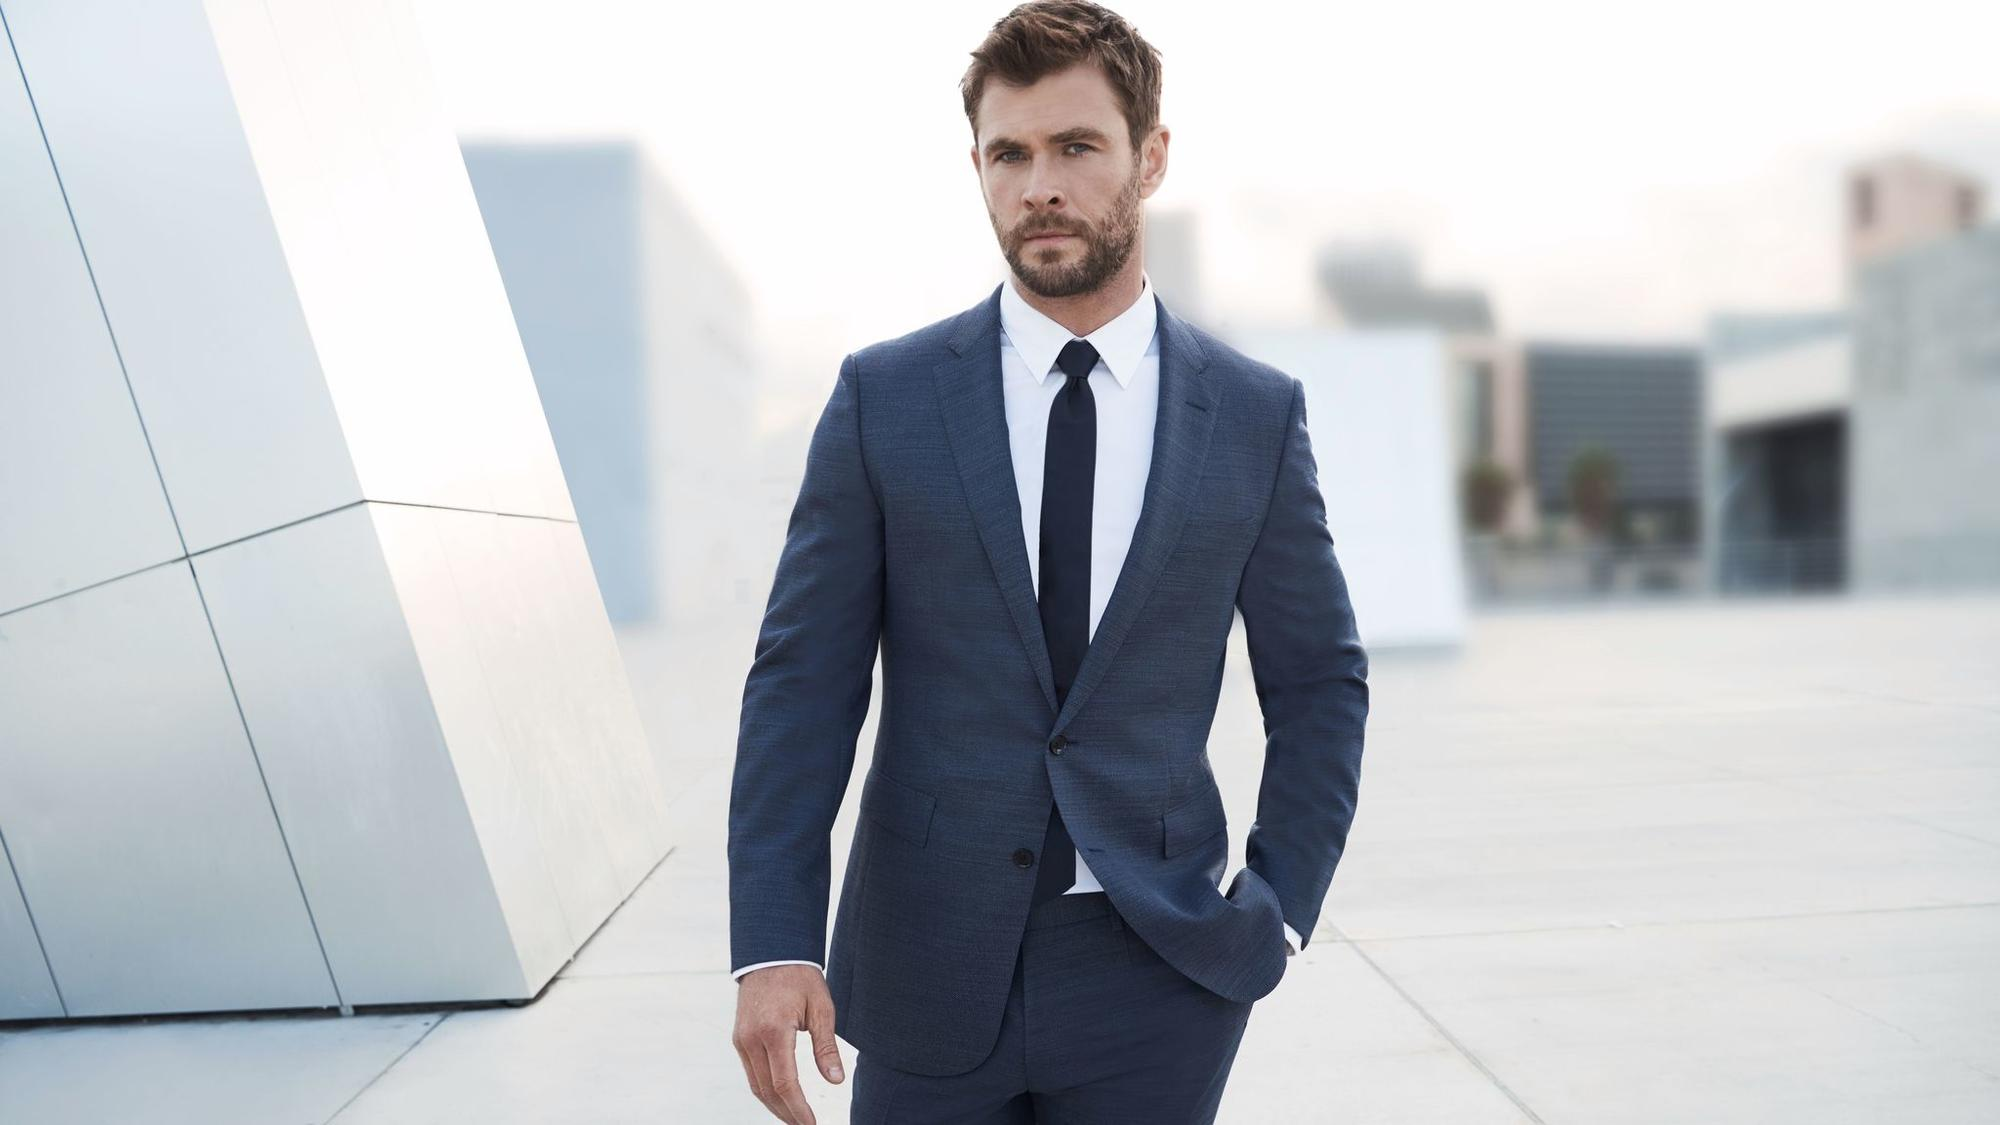 Chris Hemsworth in a photo from Hugo Boss' new Boss Bottled Tonic fragrance campaign shot by Nicholas Goldberg.